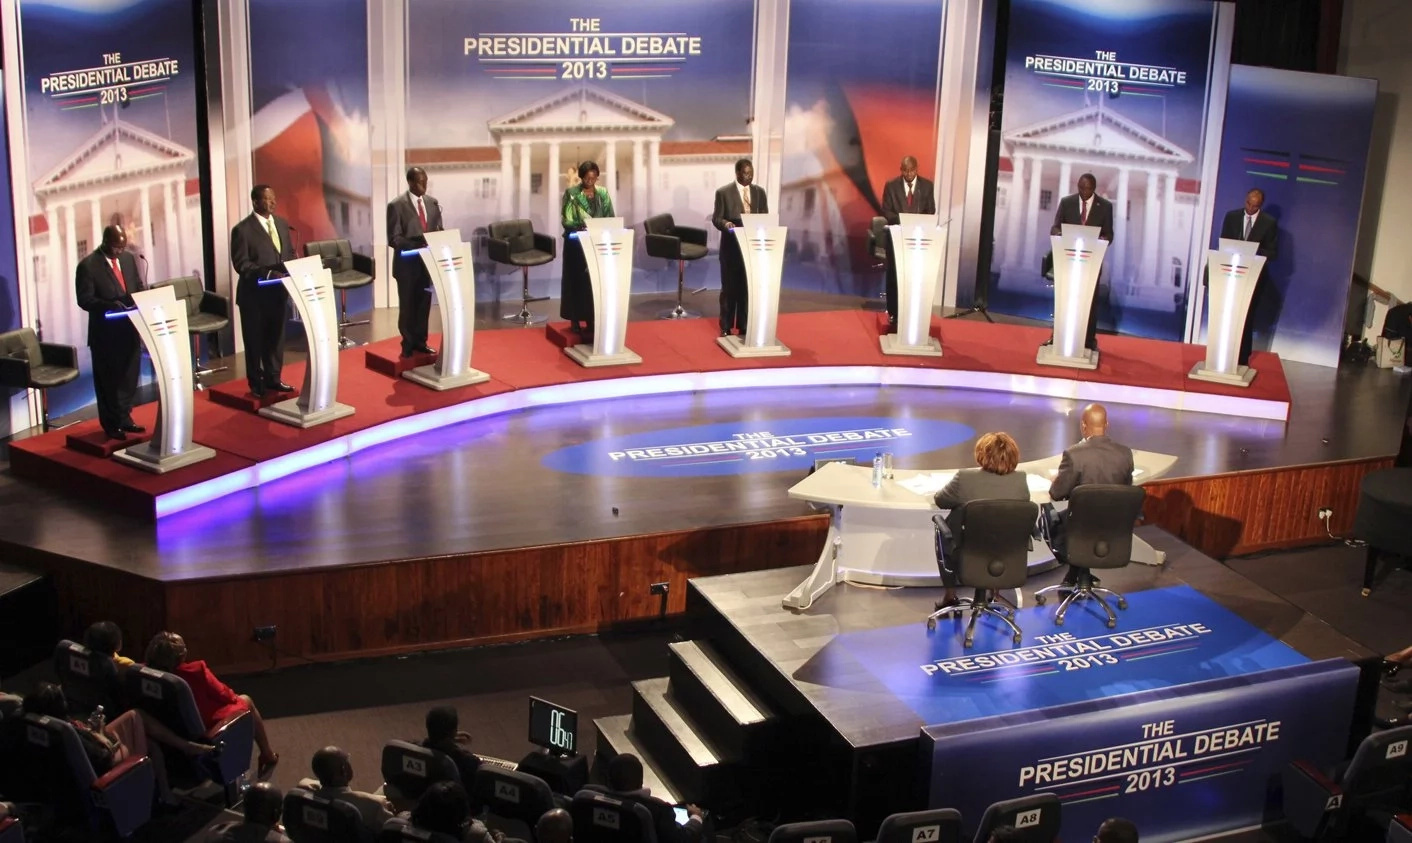 Presidential debate organisers to lose millions if event is stopped